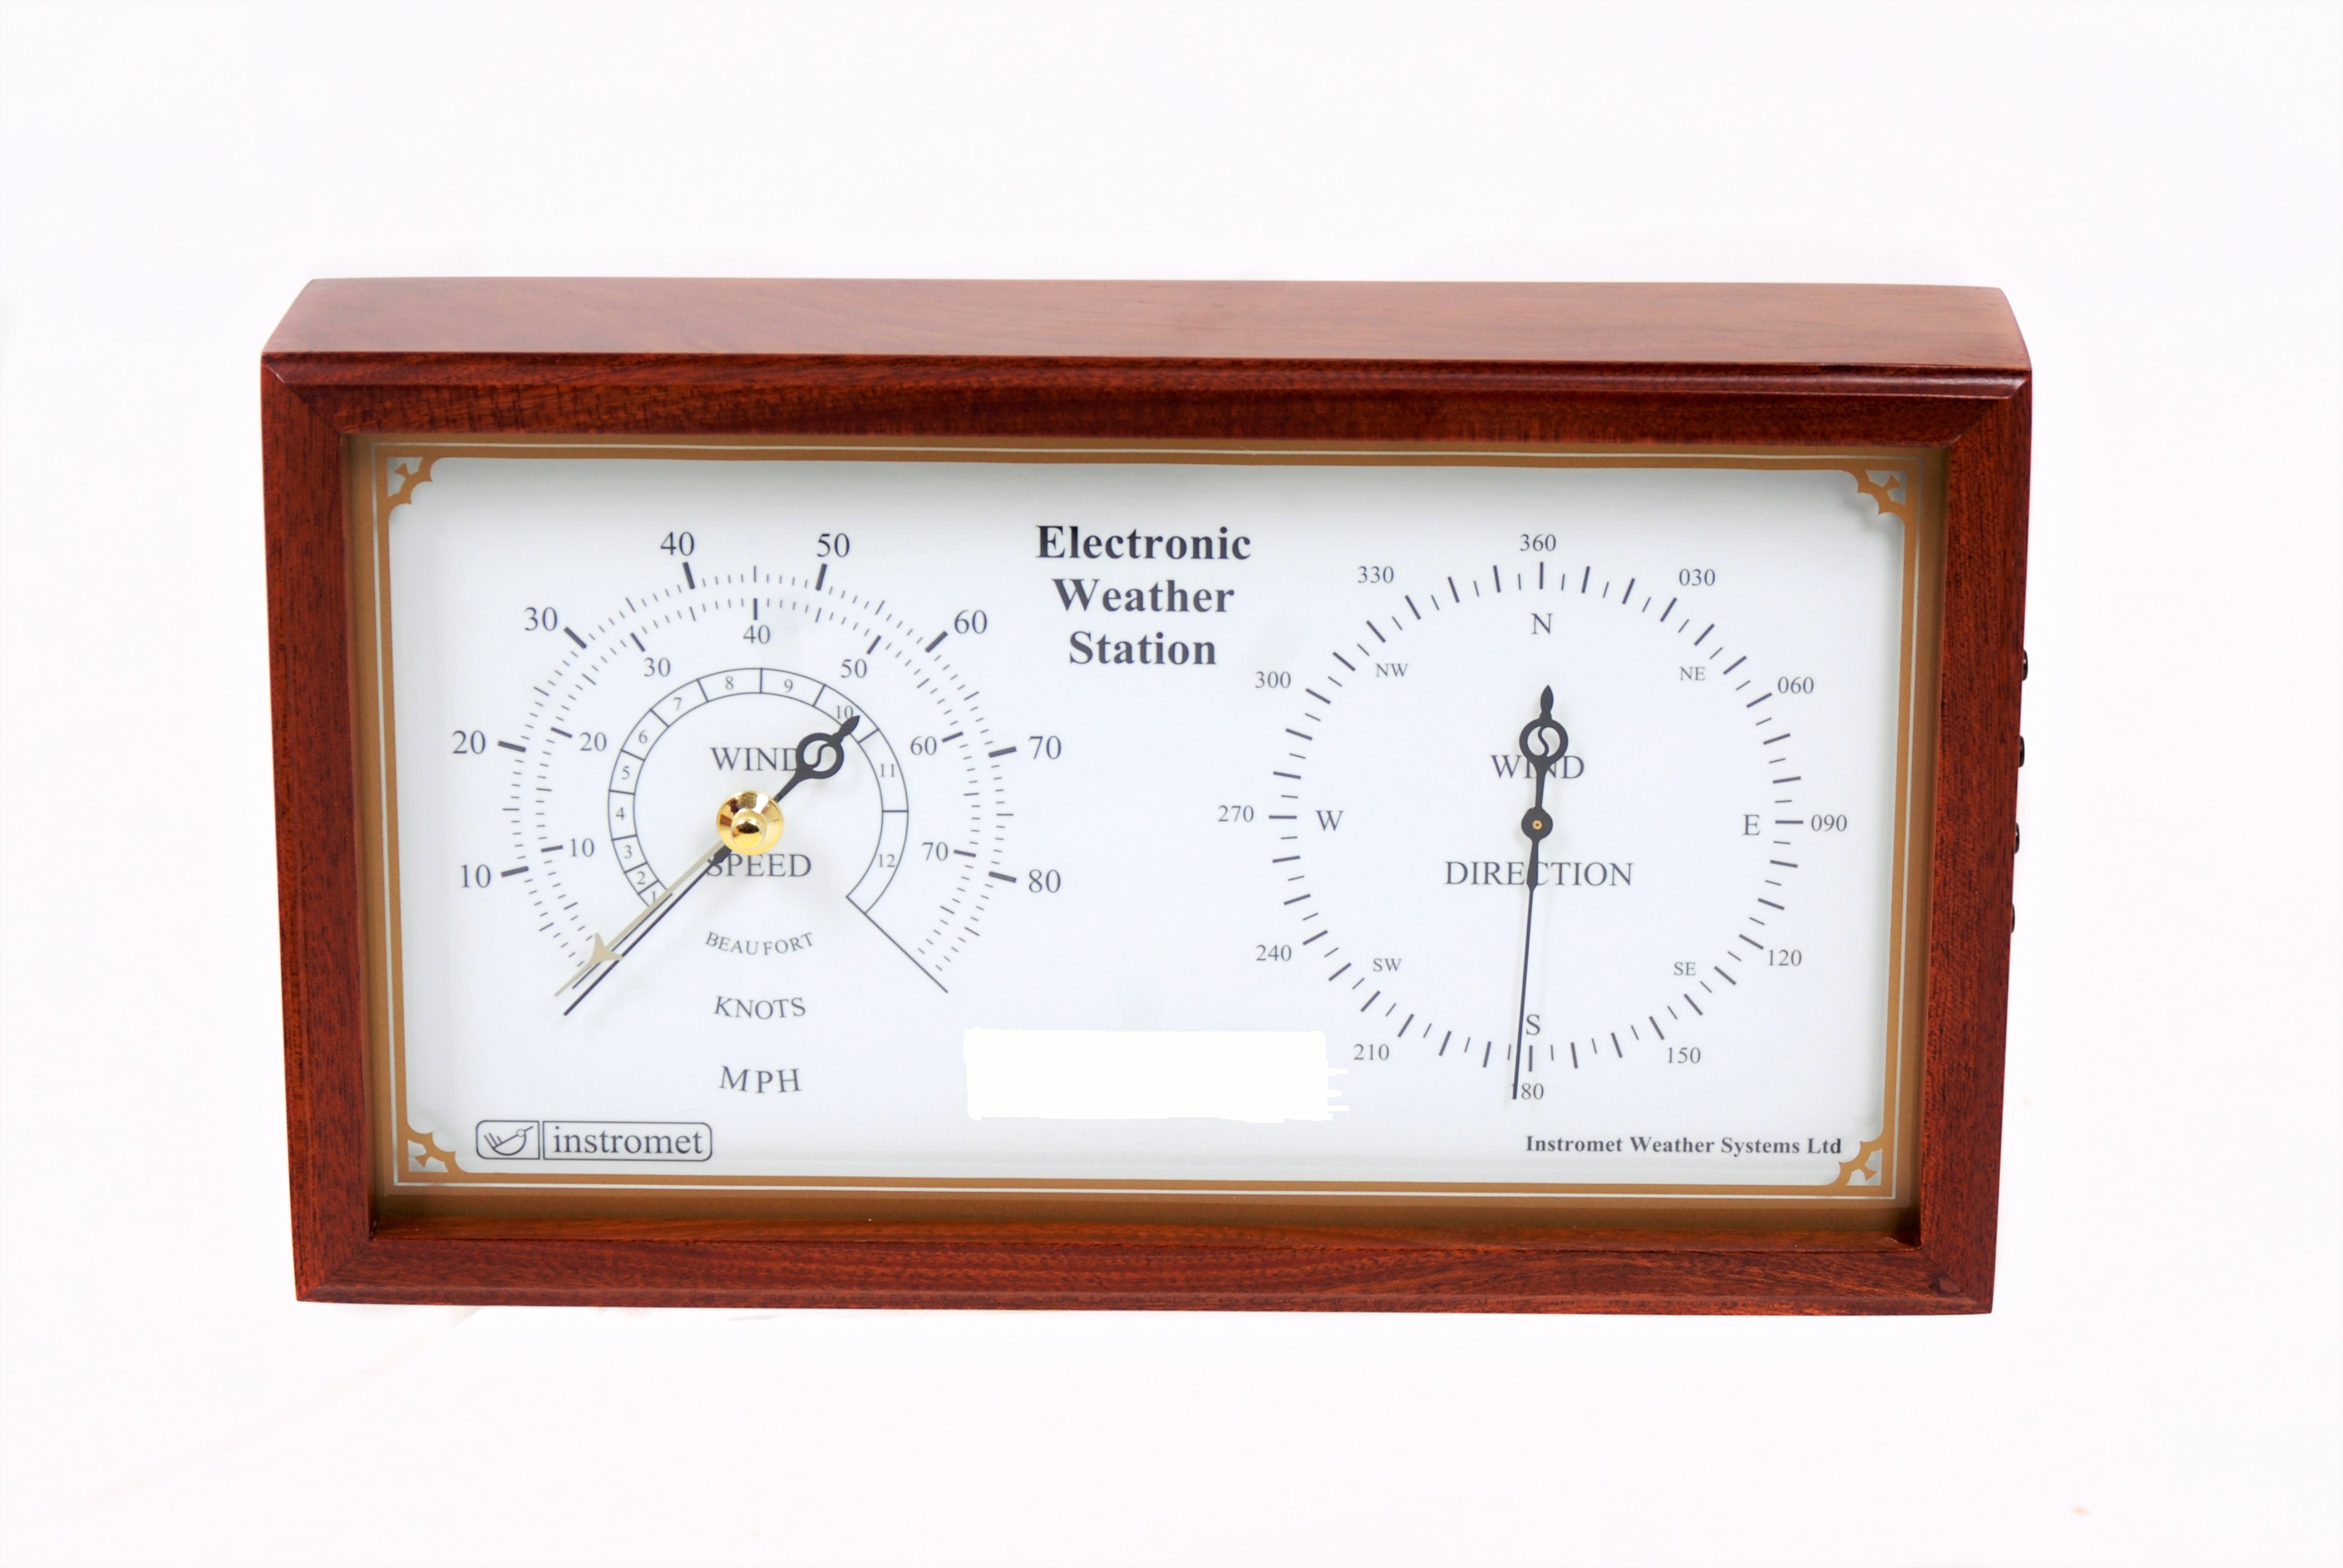 Instromet ATMOS N MPH Weather Station - IC-35120